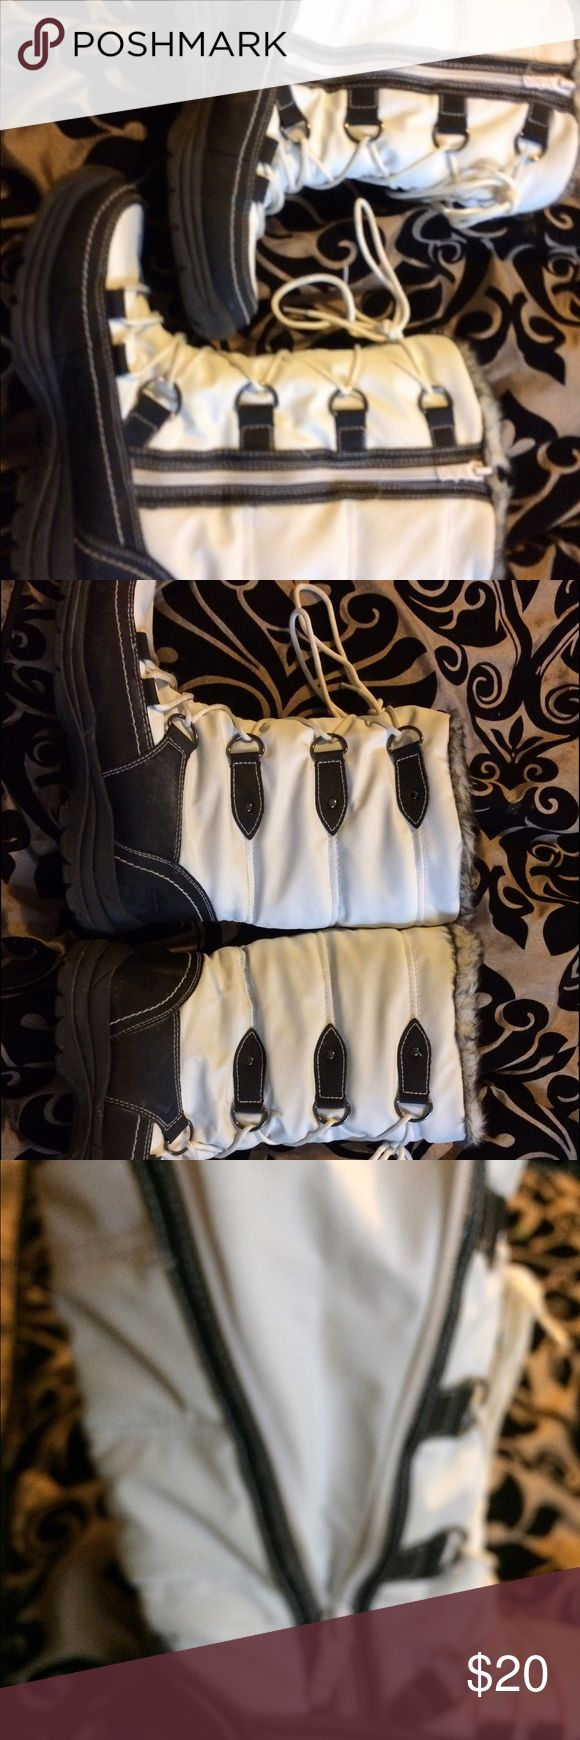 Tote winter boots Only worn twice totes winter boots. Warm, water proof and they're in great condition. like new. Youth size 7 Totes Shoes Rain & Snow Boots